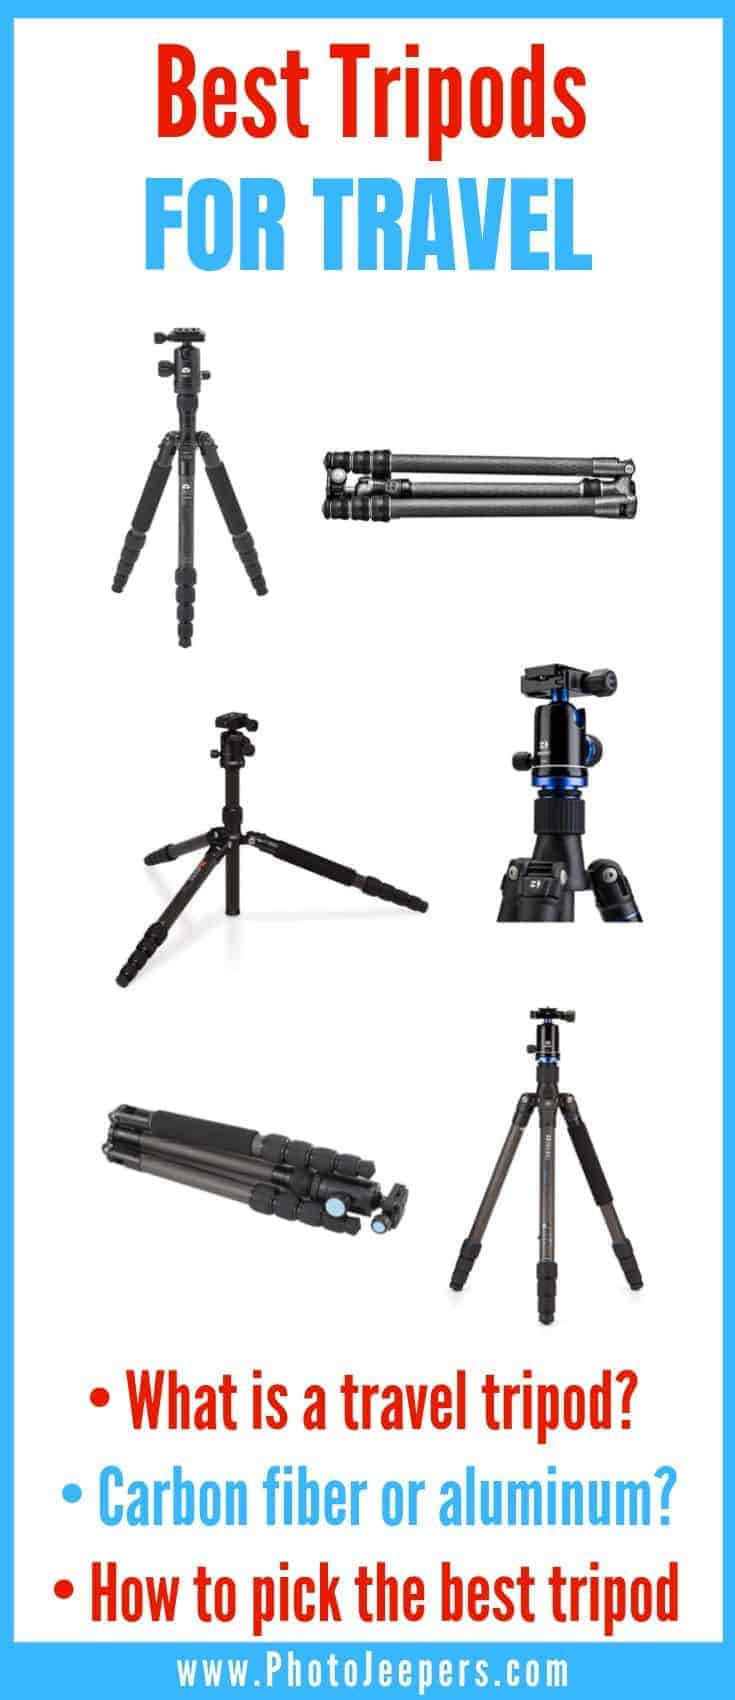 Best Tripods for Travel